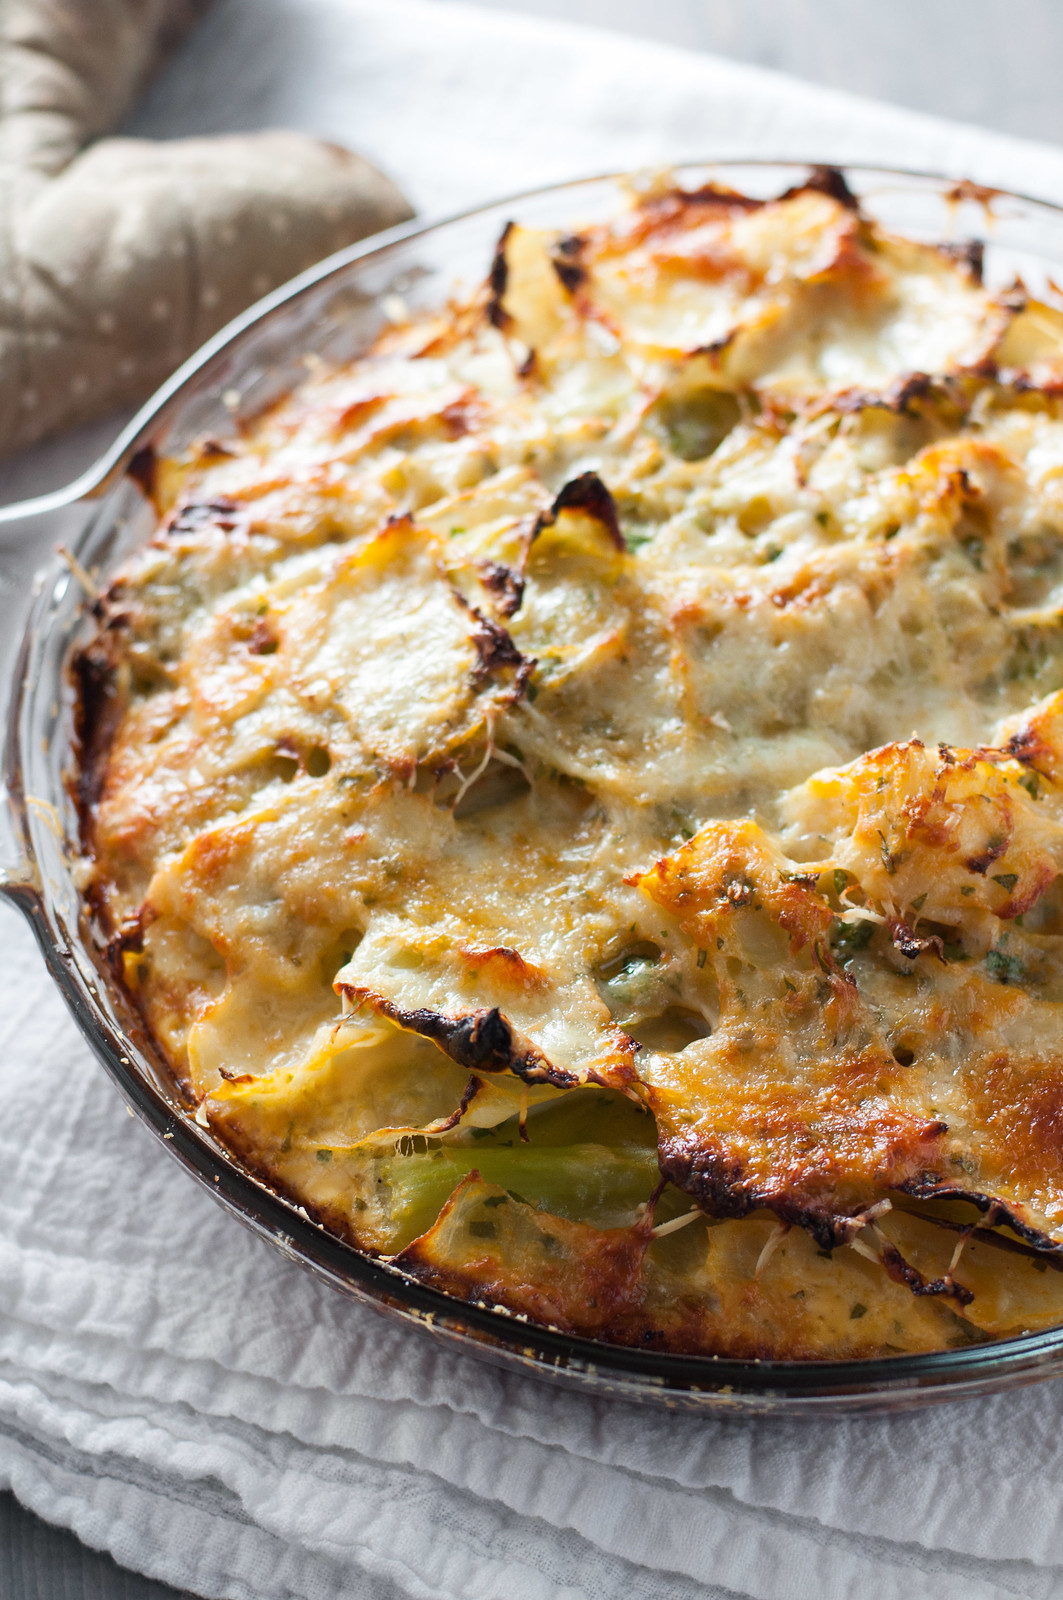 #meatless cabbage gratin recipe - no bechamel sauce required.